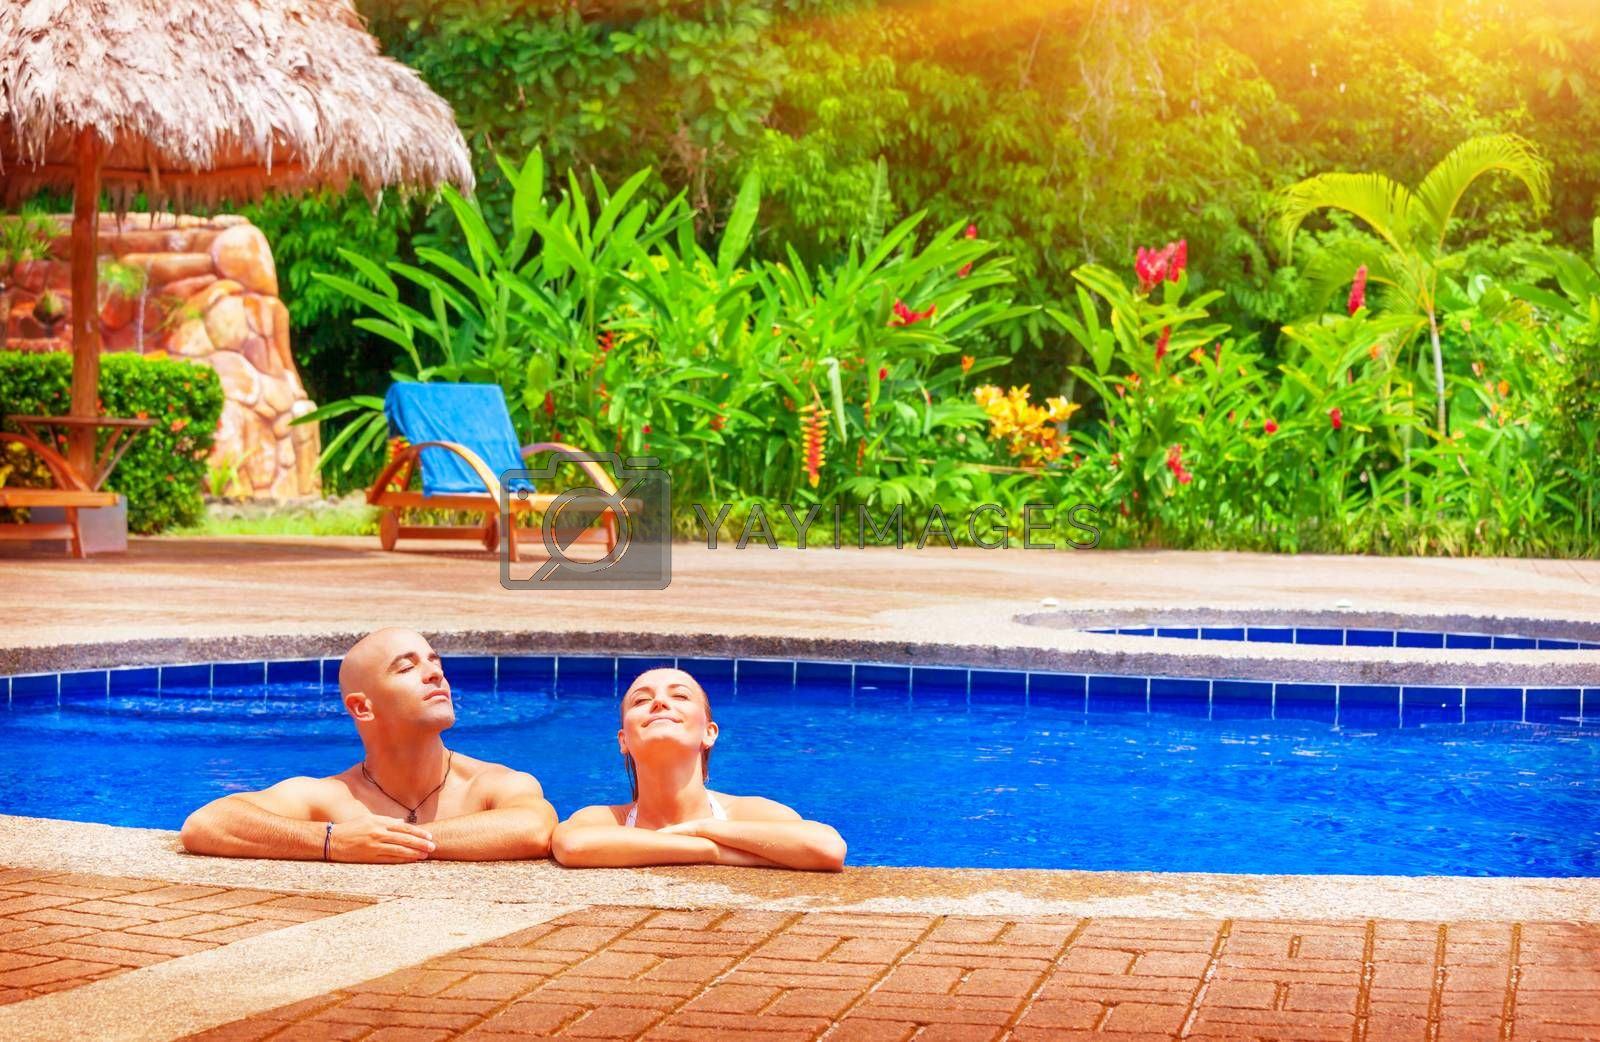 Happy couple enjoying pool, young family on day spa relaxation, luxury vacation on tropical resort, romantic travel destination